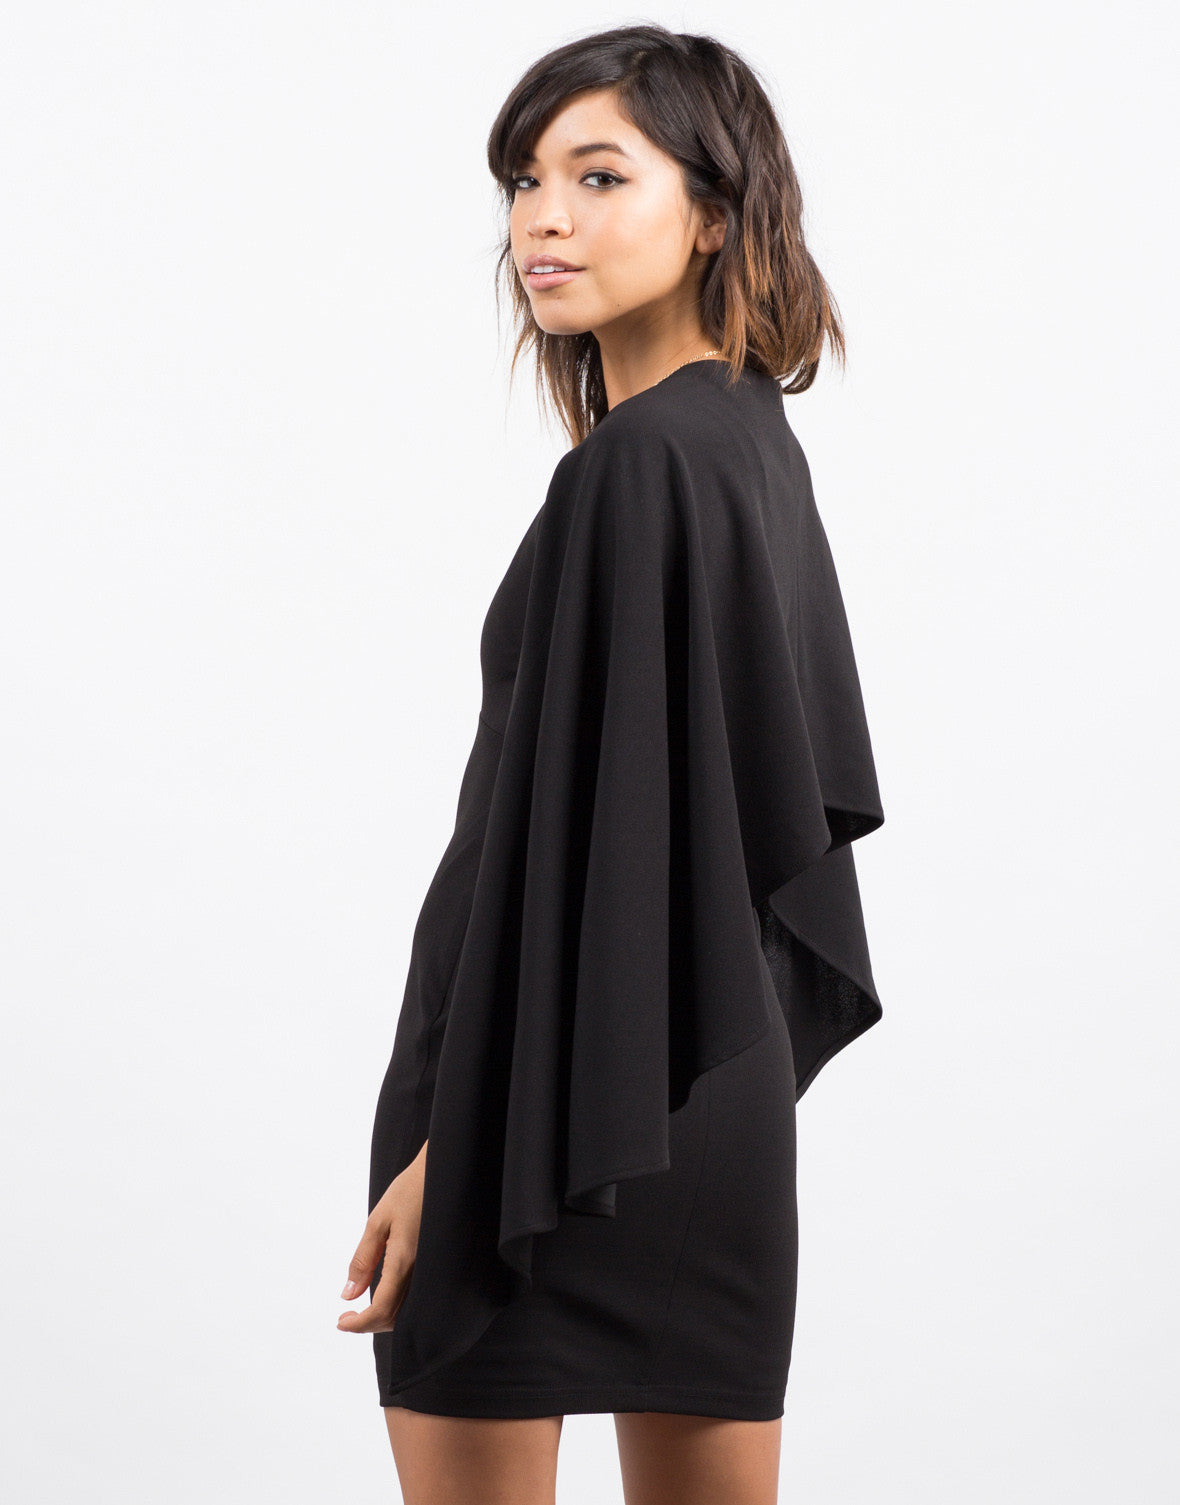 Back View of Little Black Cape Dress